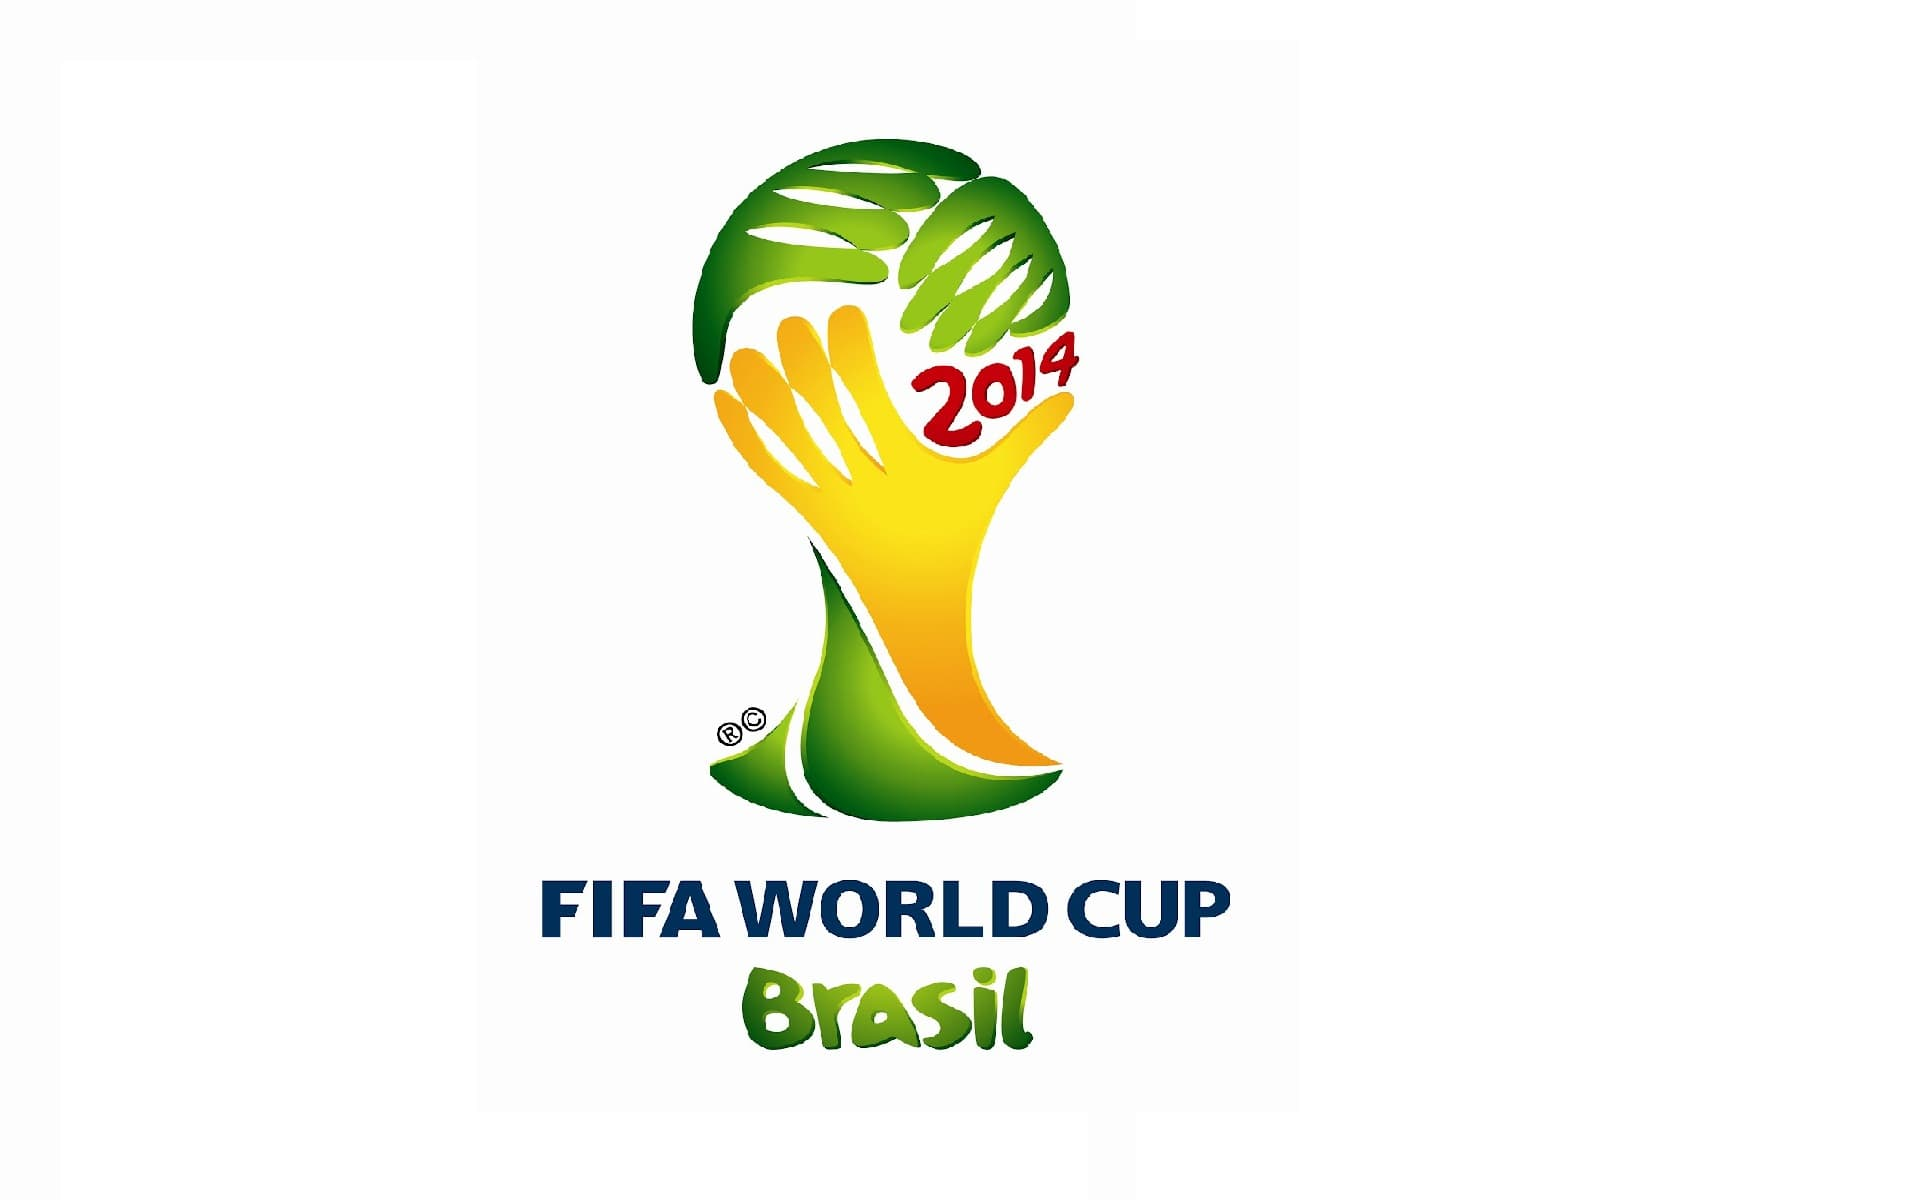 Fifa World Cup 2014 Soccer Games Live Streaming Starting June 12th @ WatchESPN and ESPN3, WatchESPN.com